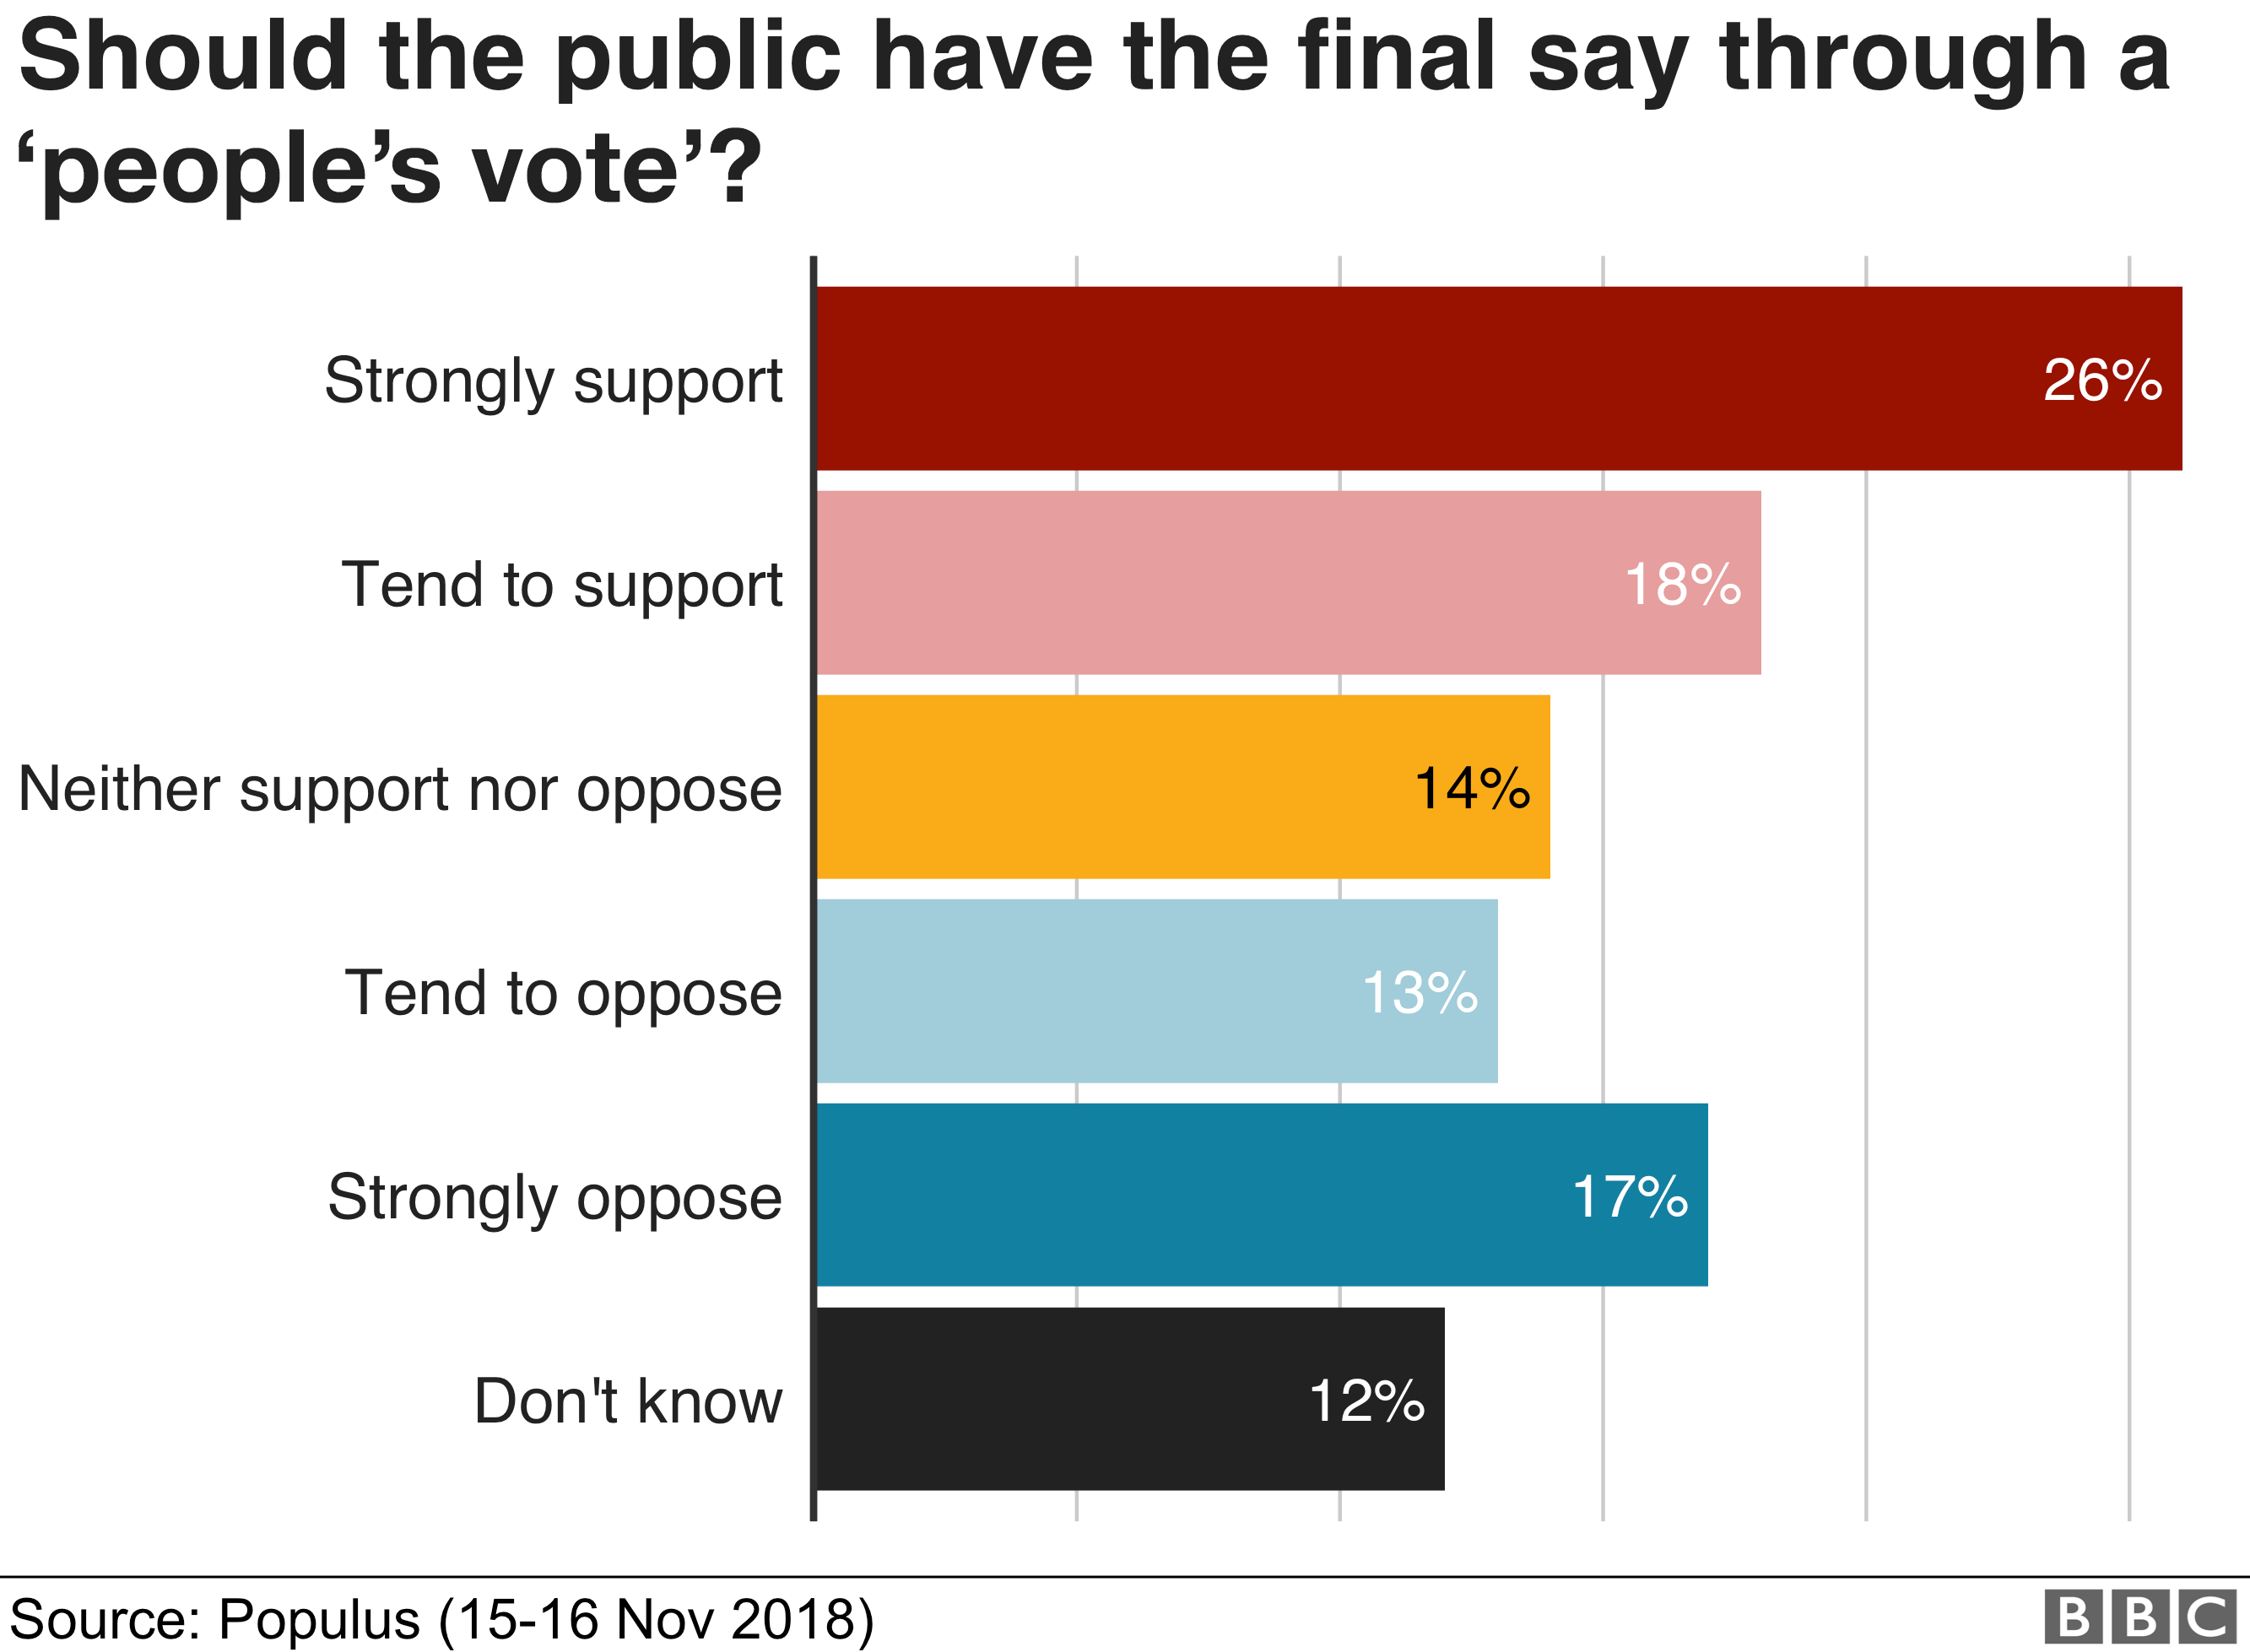 Should the public have the final say through a 'people's vote'?